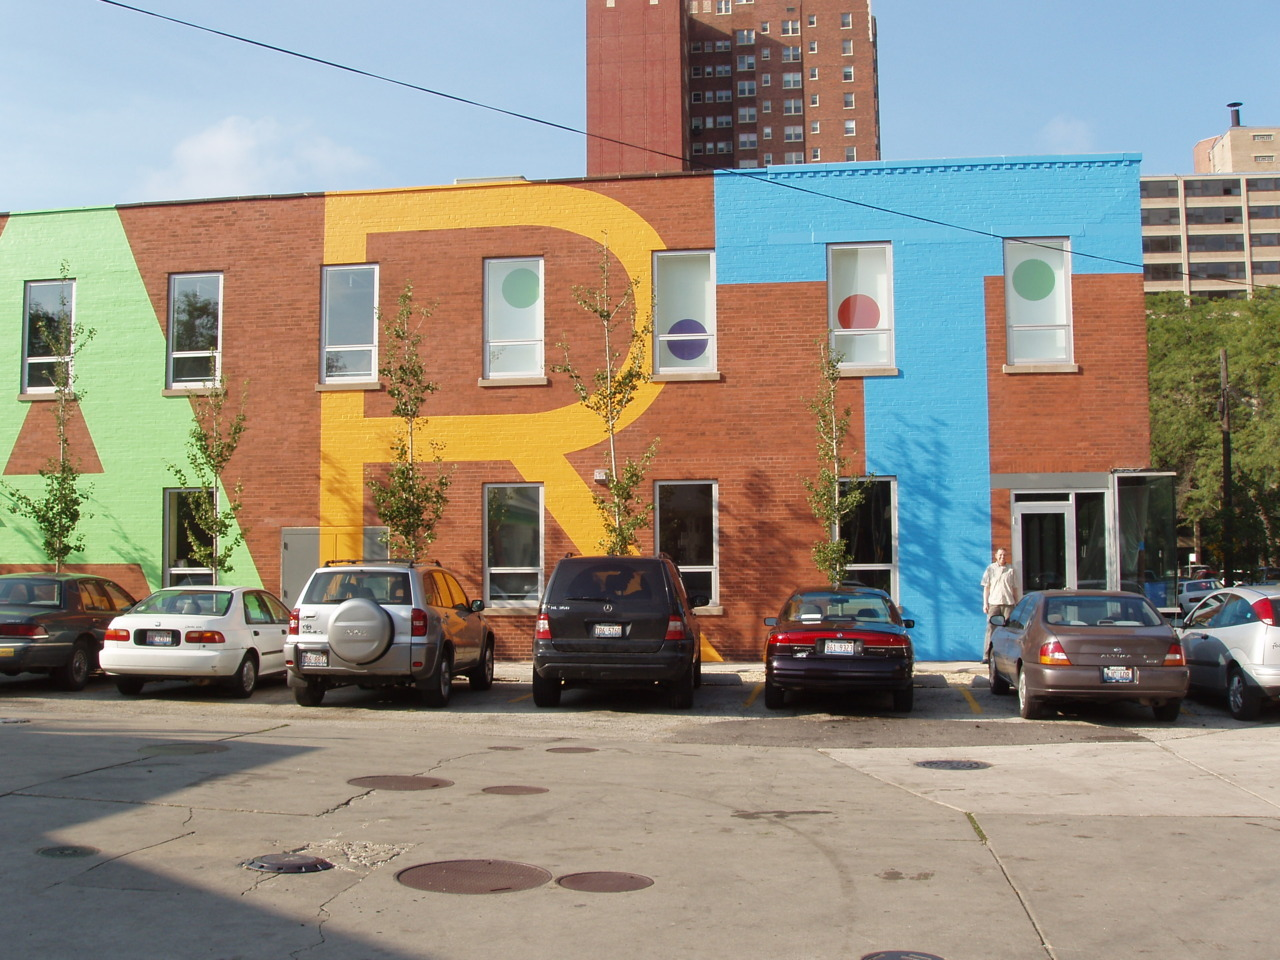 Hyde Park Art Center's South Wall at 5020 South Cornell in Chicago